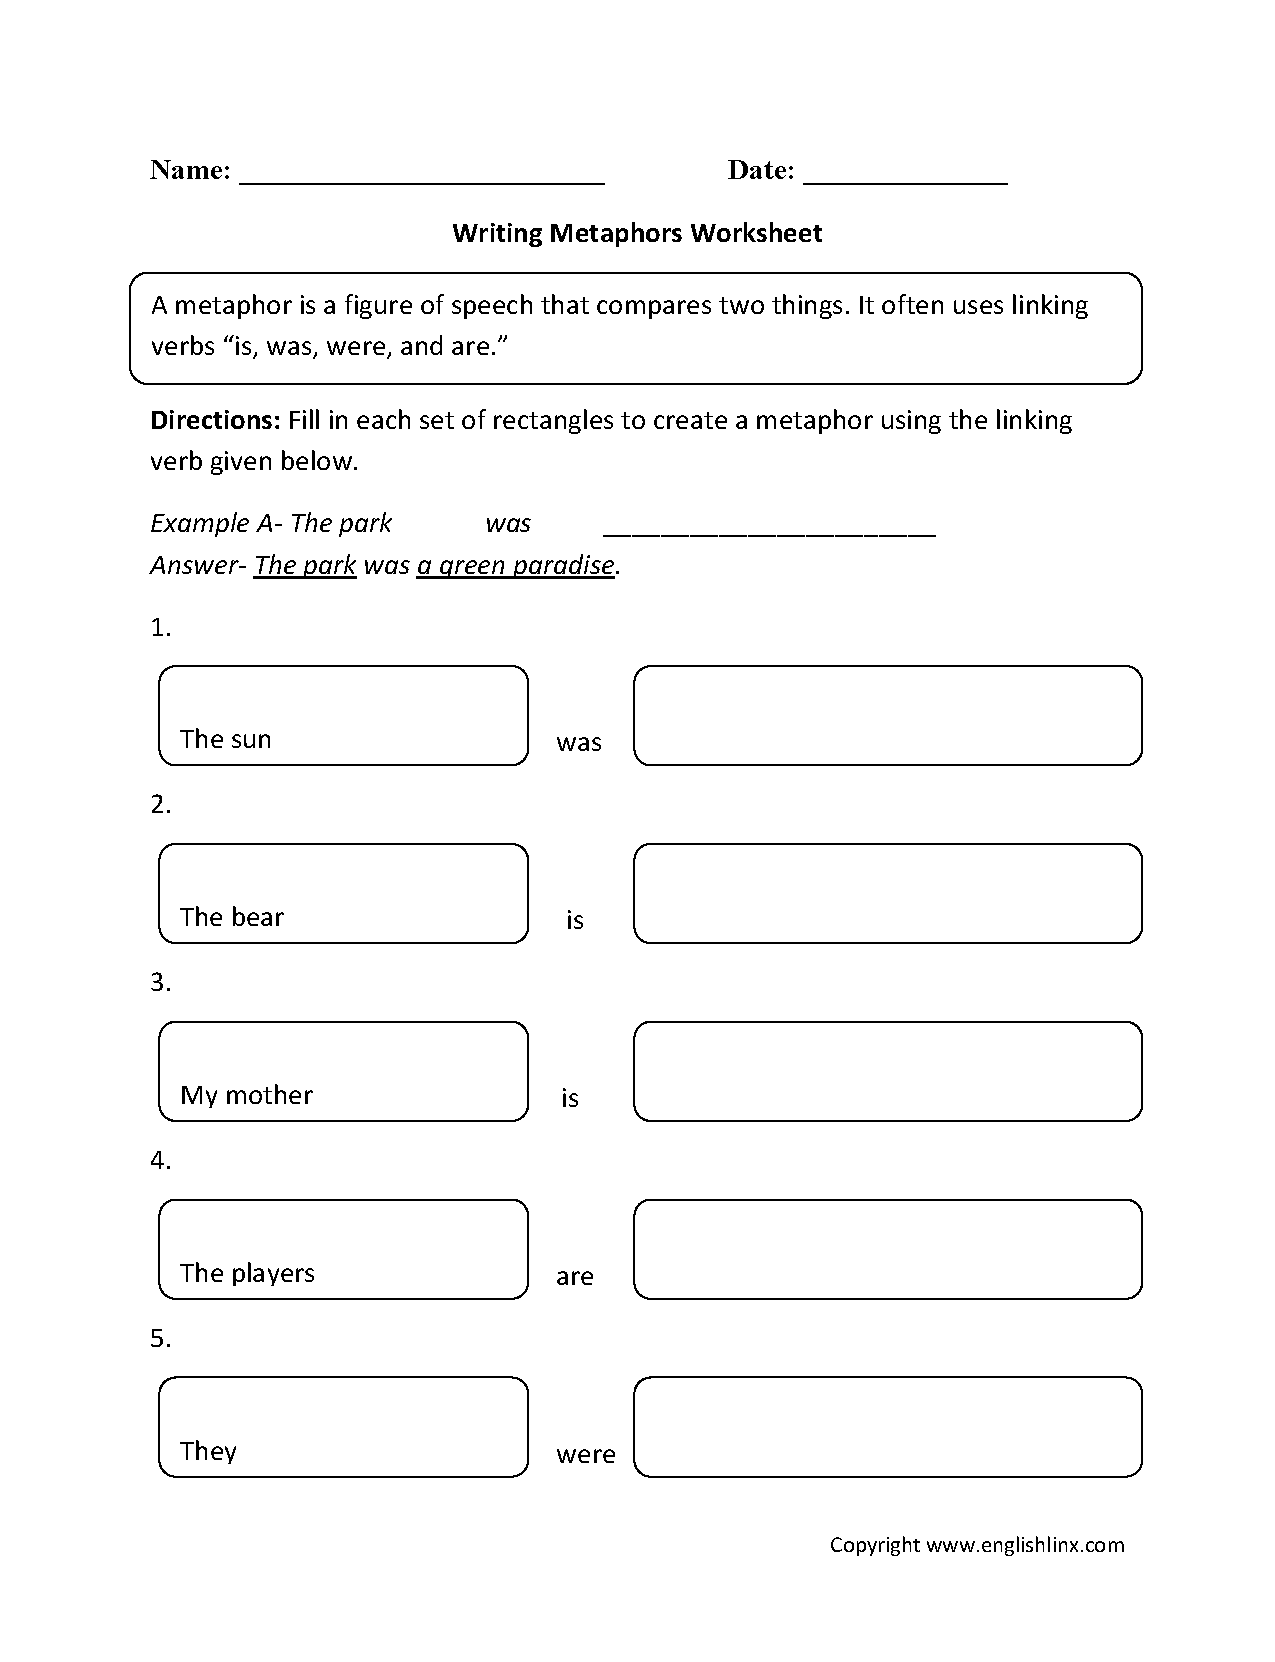 Aldiablosus  Unique Englishlinxcom  Metaphors Worksheets With Remarkable Worksheet With Delectable Telling Time To The Half Hour Worksheet Also Number Problems Worksheets In Addition Order Of Operations Worksheets Kuta And Equation Practice Worksheet As Well As Context Clues Worksheets For Th Grade Additionally Mcdougal Littell World Geography Worksheets From Englishlinxcom With Aldiablosus  Remarkable Englishlinxcom  Metaphors Worksheets With Delectable Worksheet And Unique Telling Time To The Half Hour Worksheet Also Number Problems Worksheets In Addition Order Of Operations Worksheets Kuta From Englishlinxcom